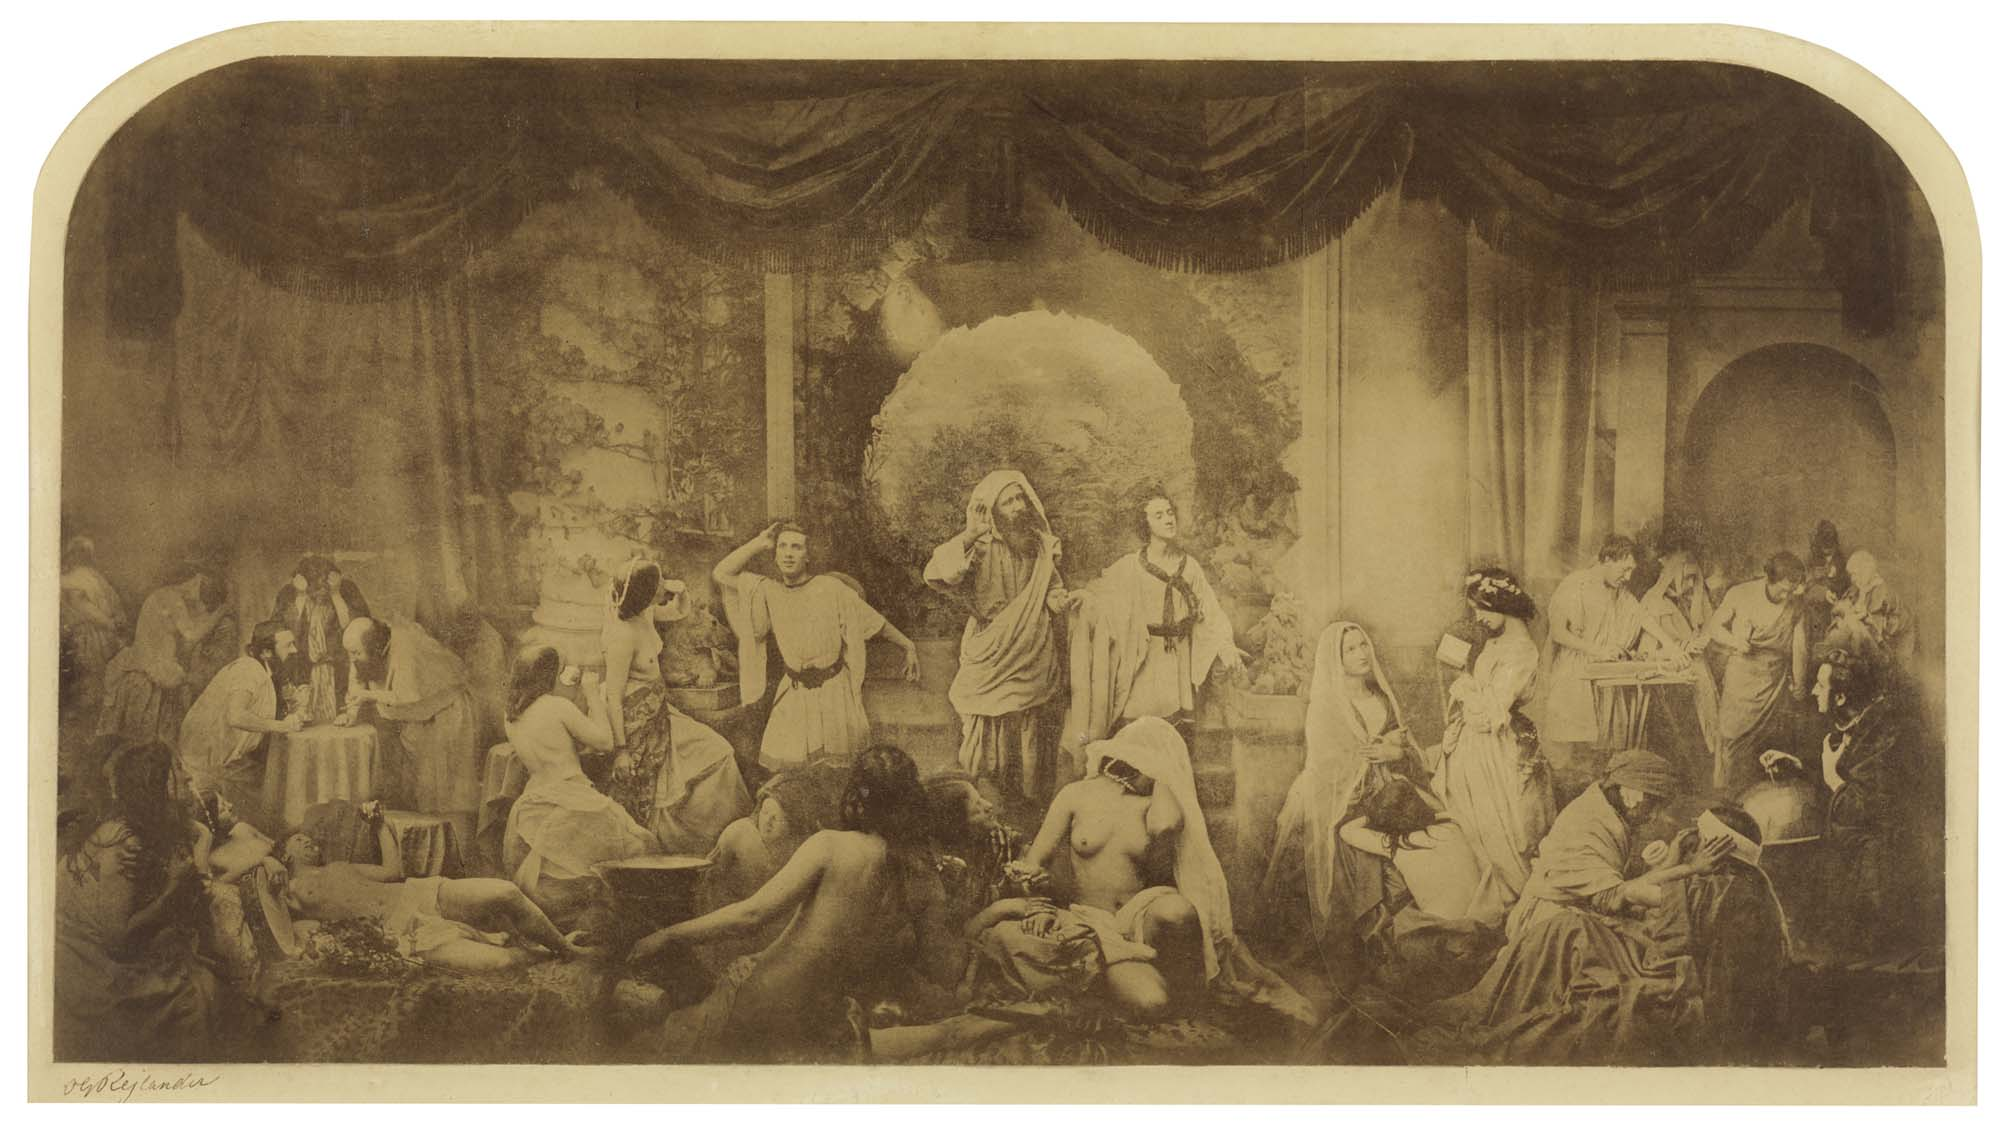 an old photograph in sepia showing an old man with a beard leading two young men into a room in whihc naked women cavort and recline whilts other clothed study and work